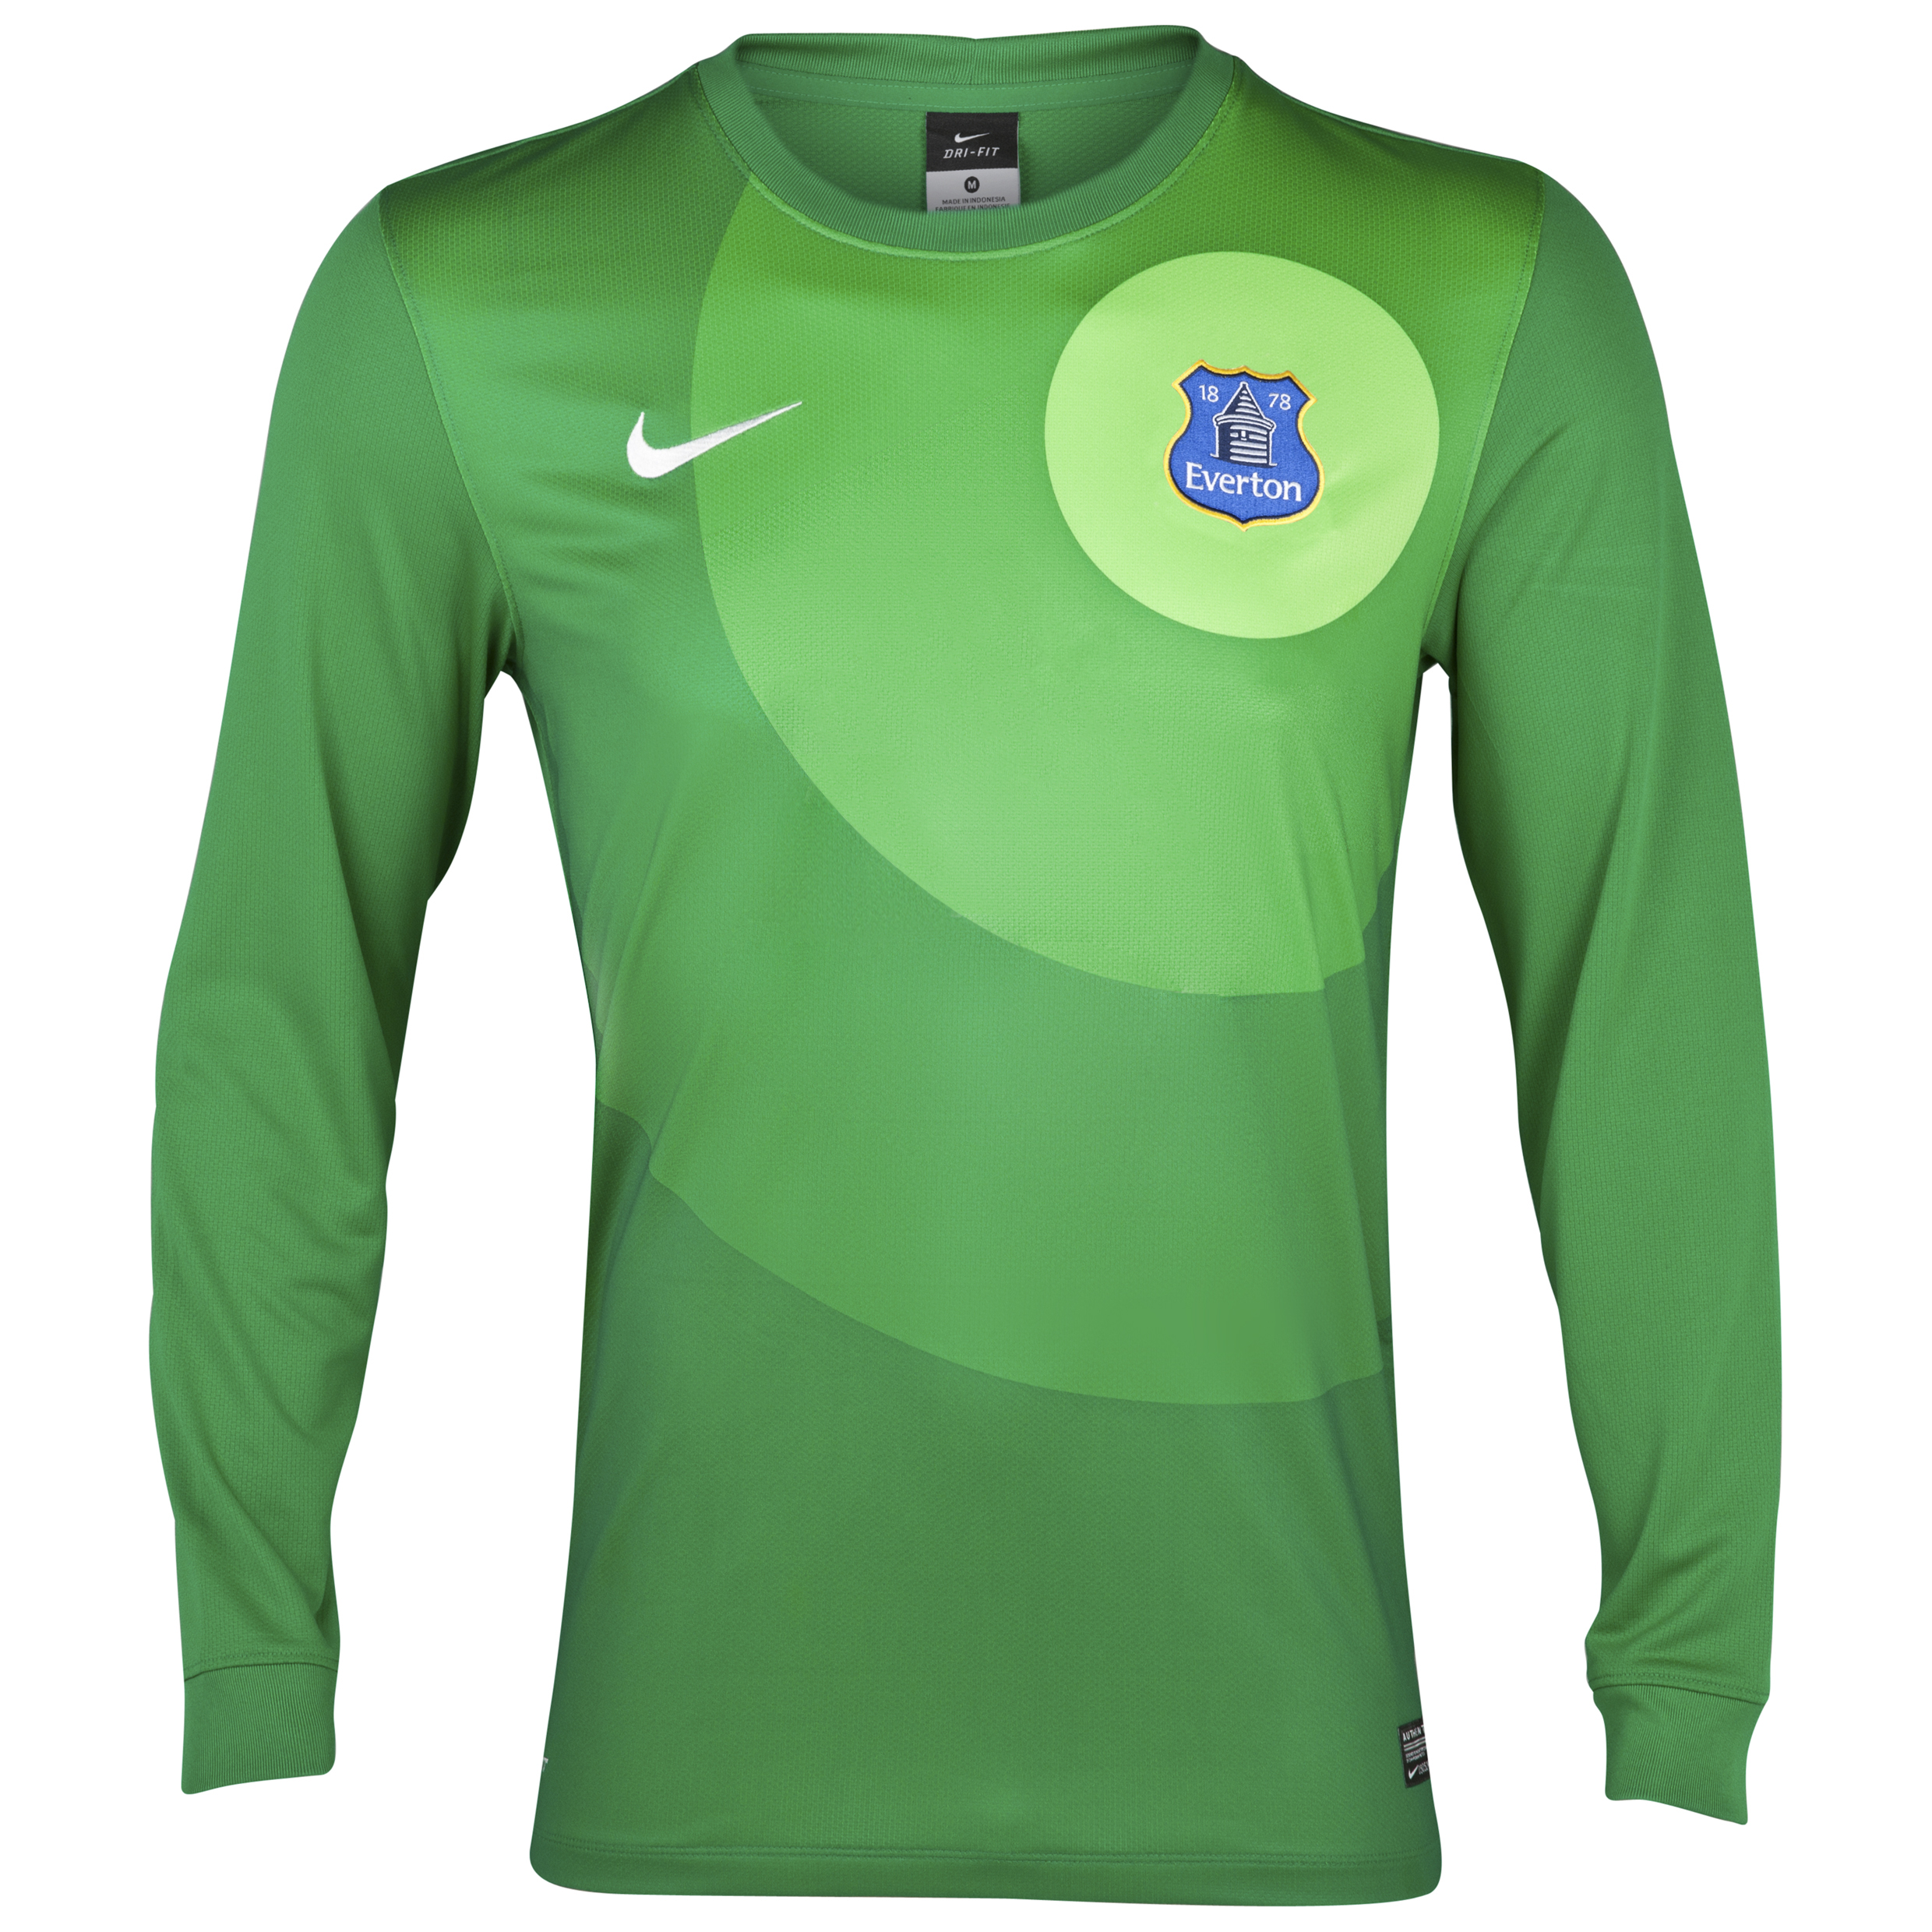 Everton Away Goalkeeper Shirt 2013/14 - Junior